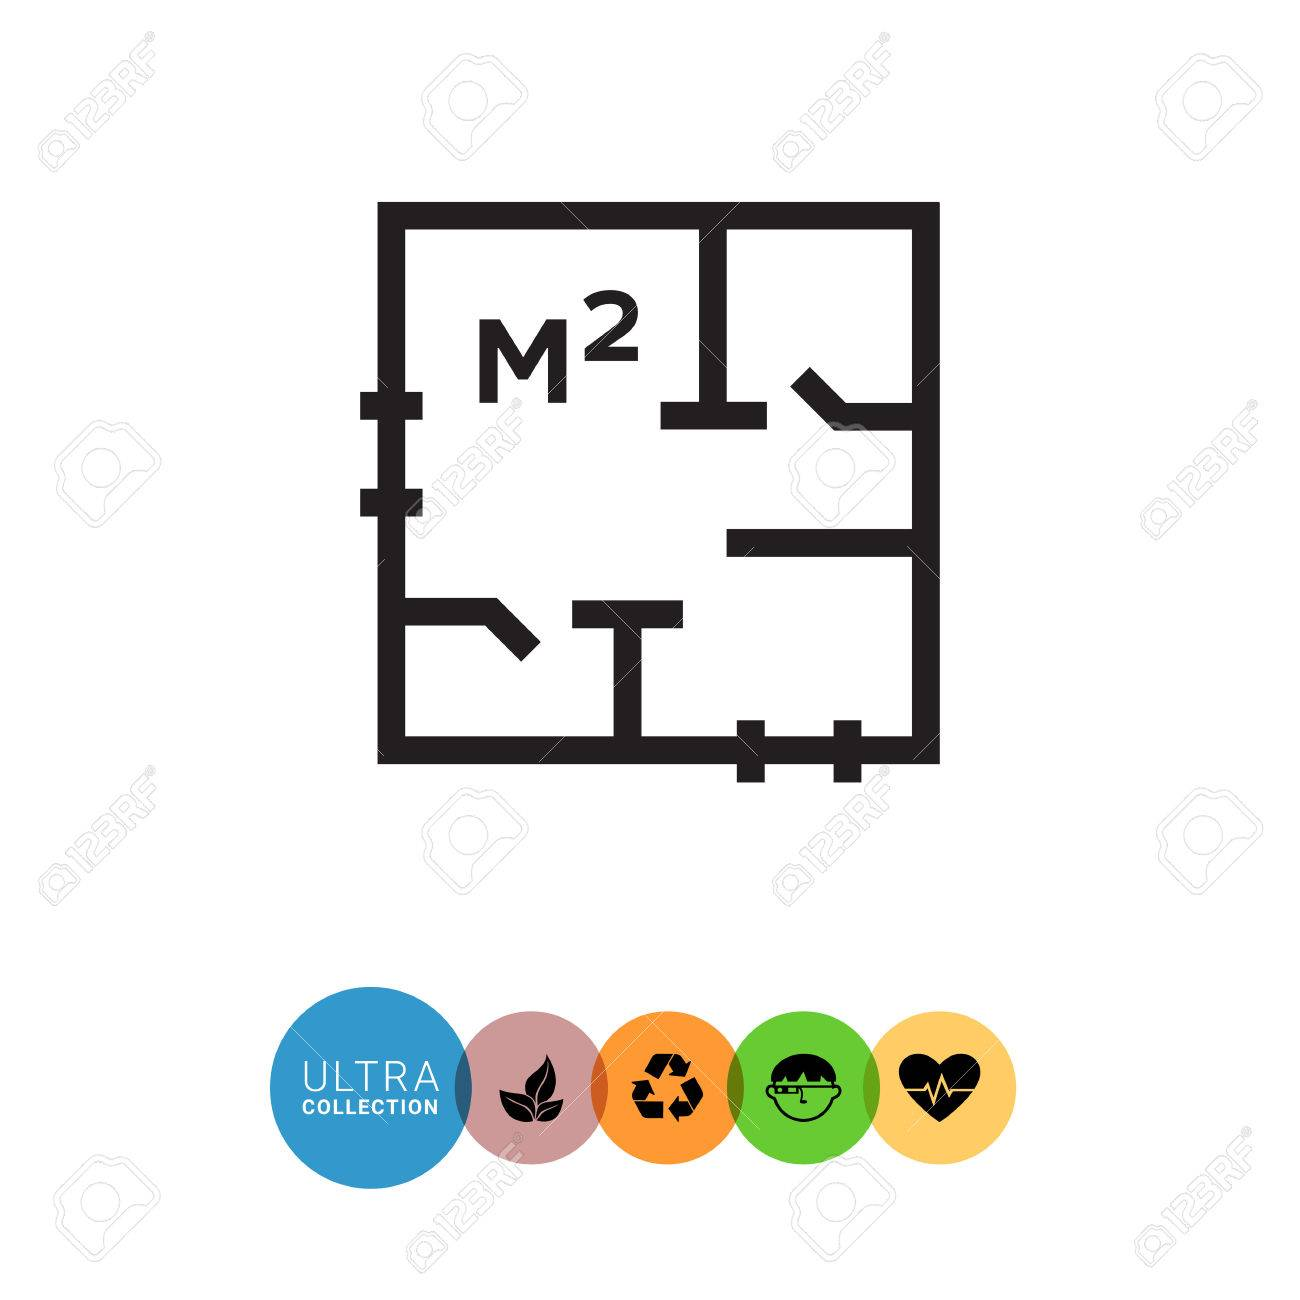 Icon of apartment scheme with square meter designation royalty icon of apartment scheme with square meter designation stock vector 56525834 biocorpaavc